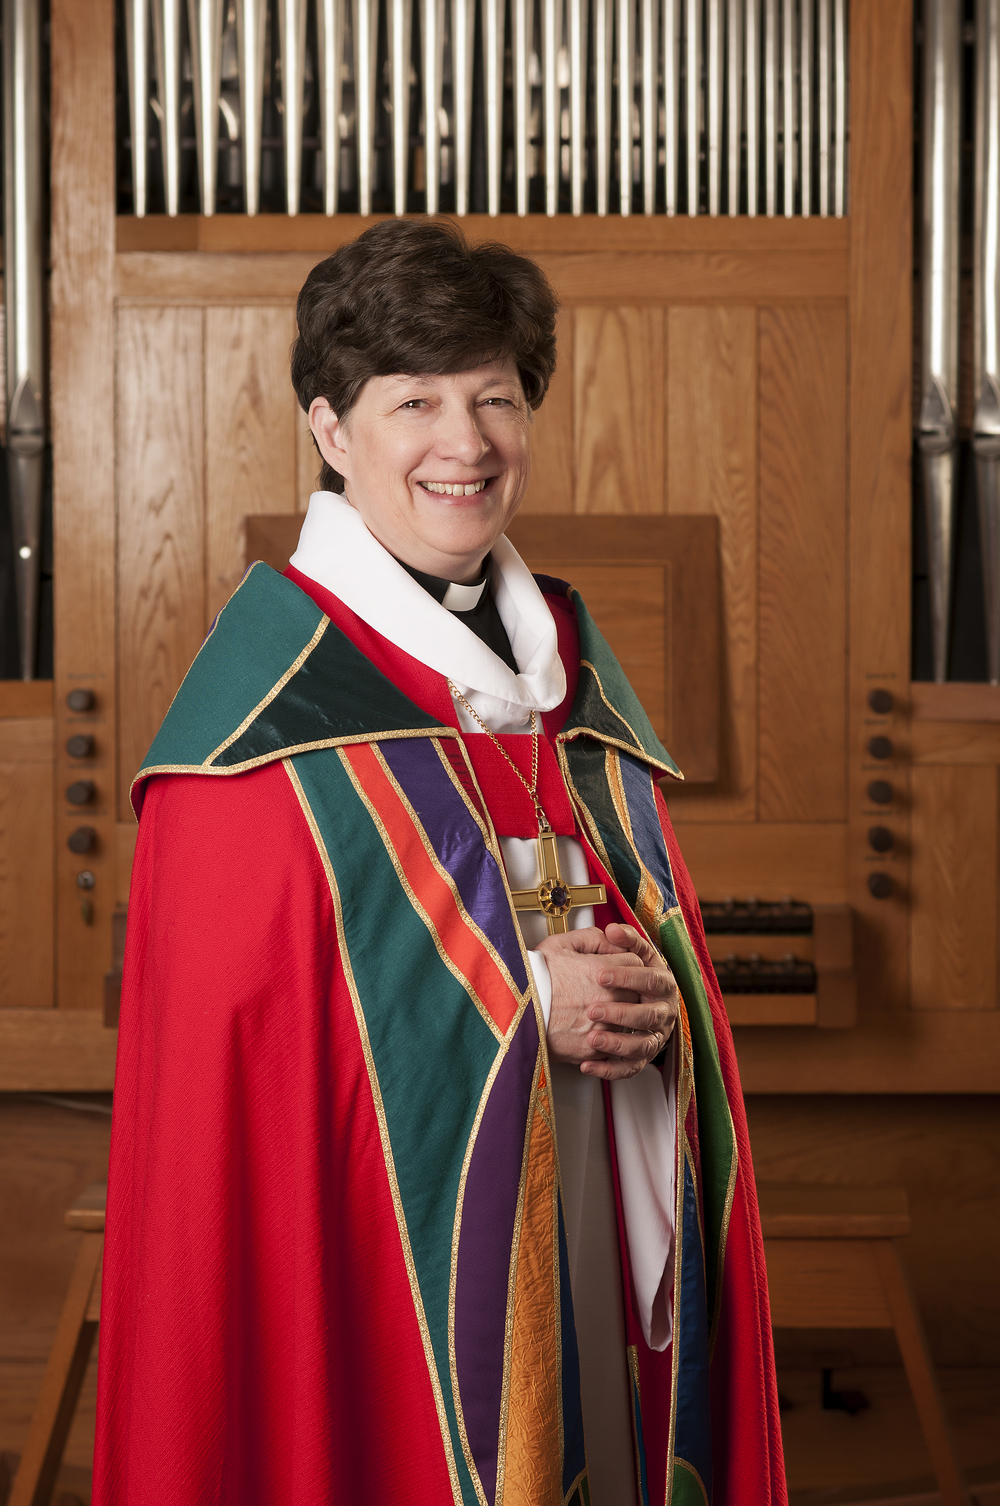 The presiding bishop of the ECLA Rev. Elizabeth A. Eaton. Credit: ECLA.